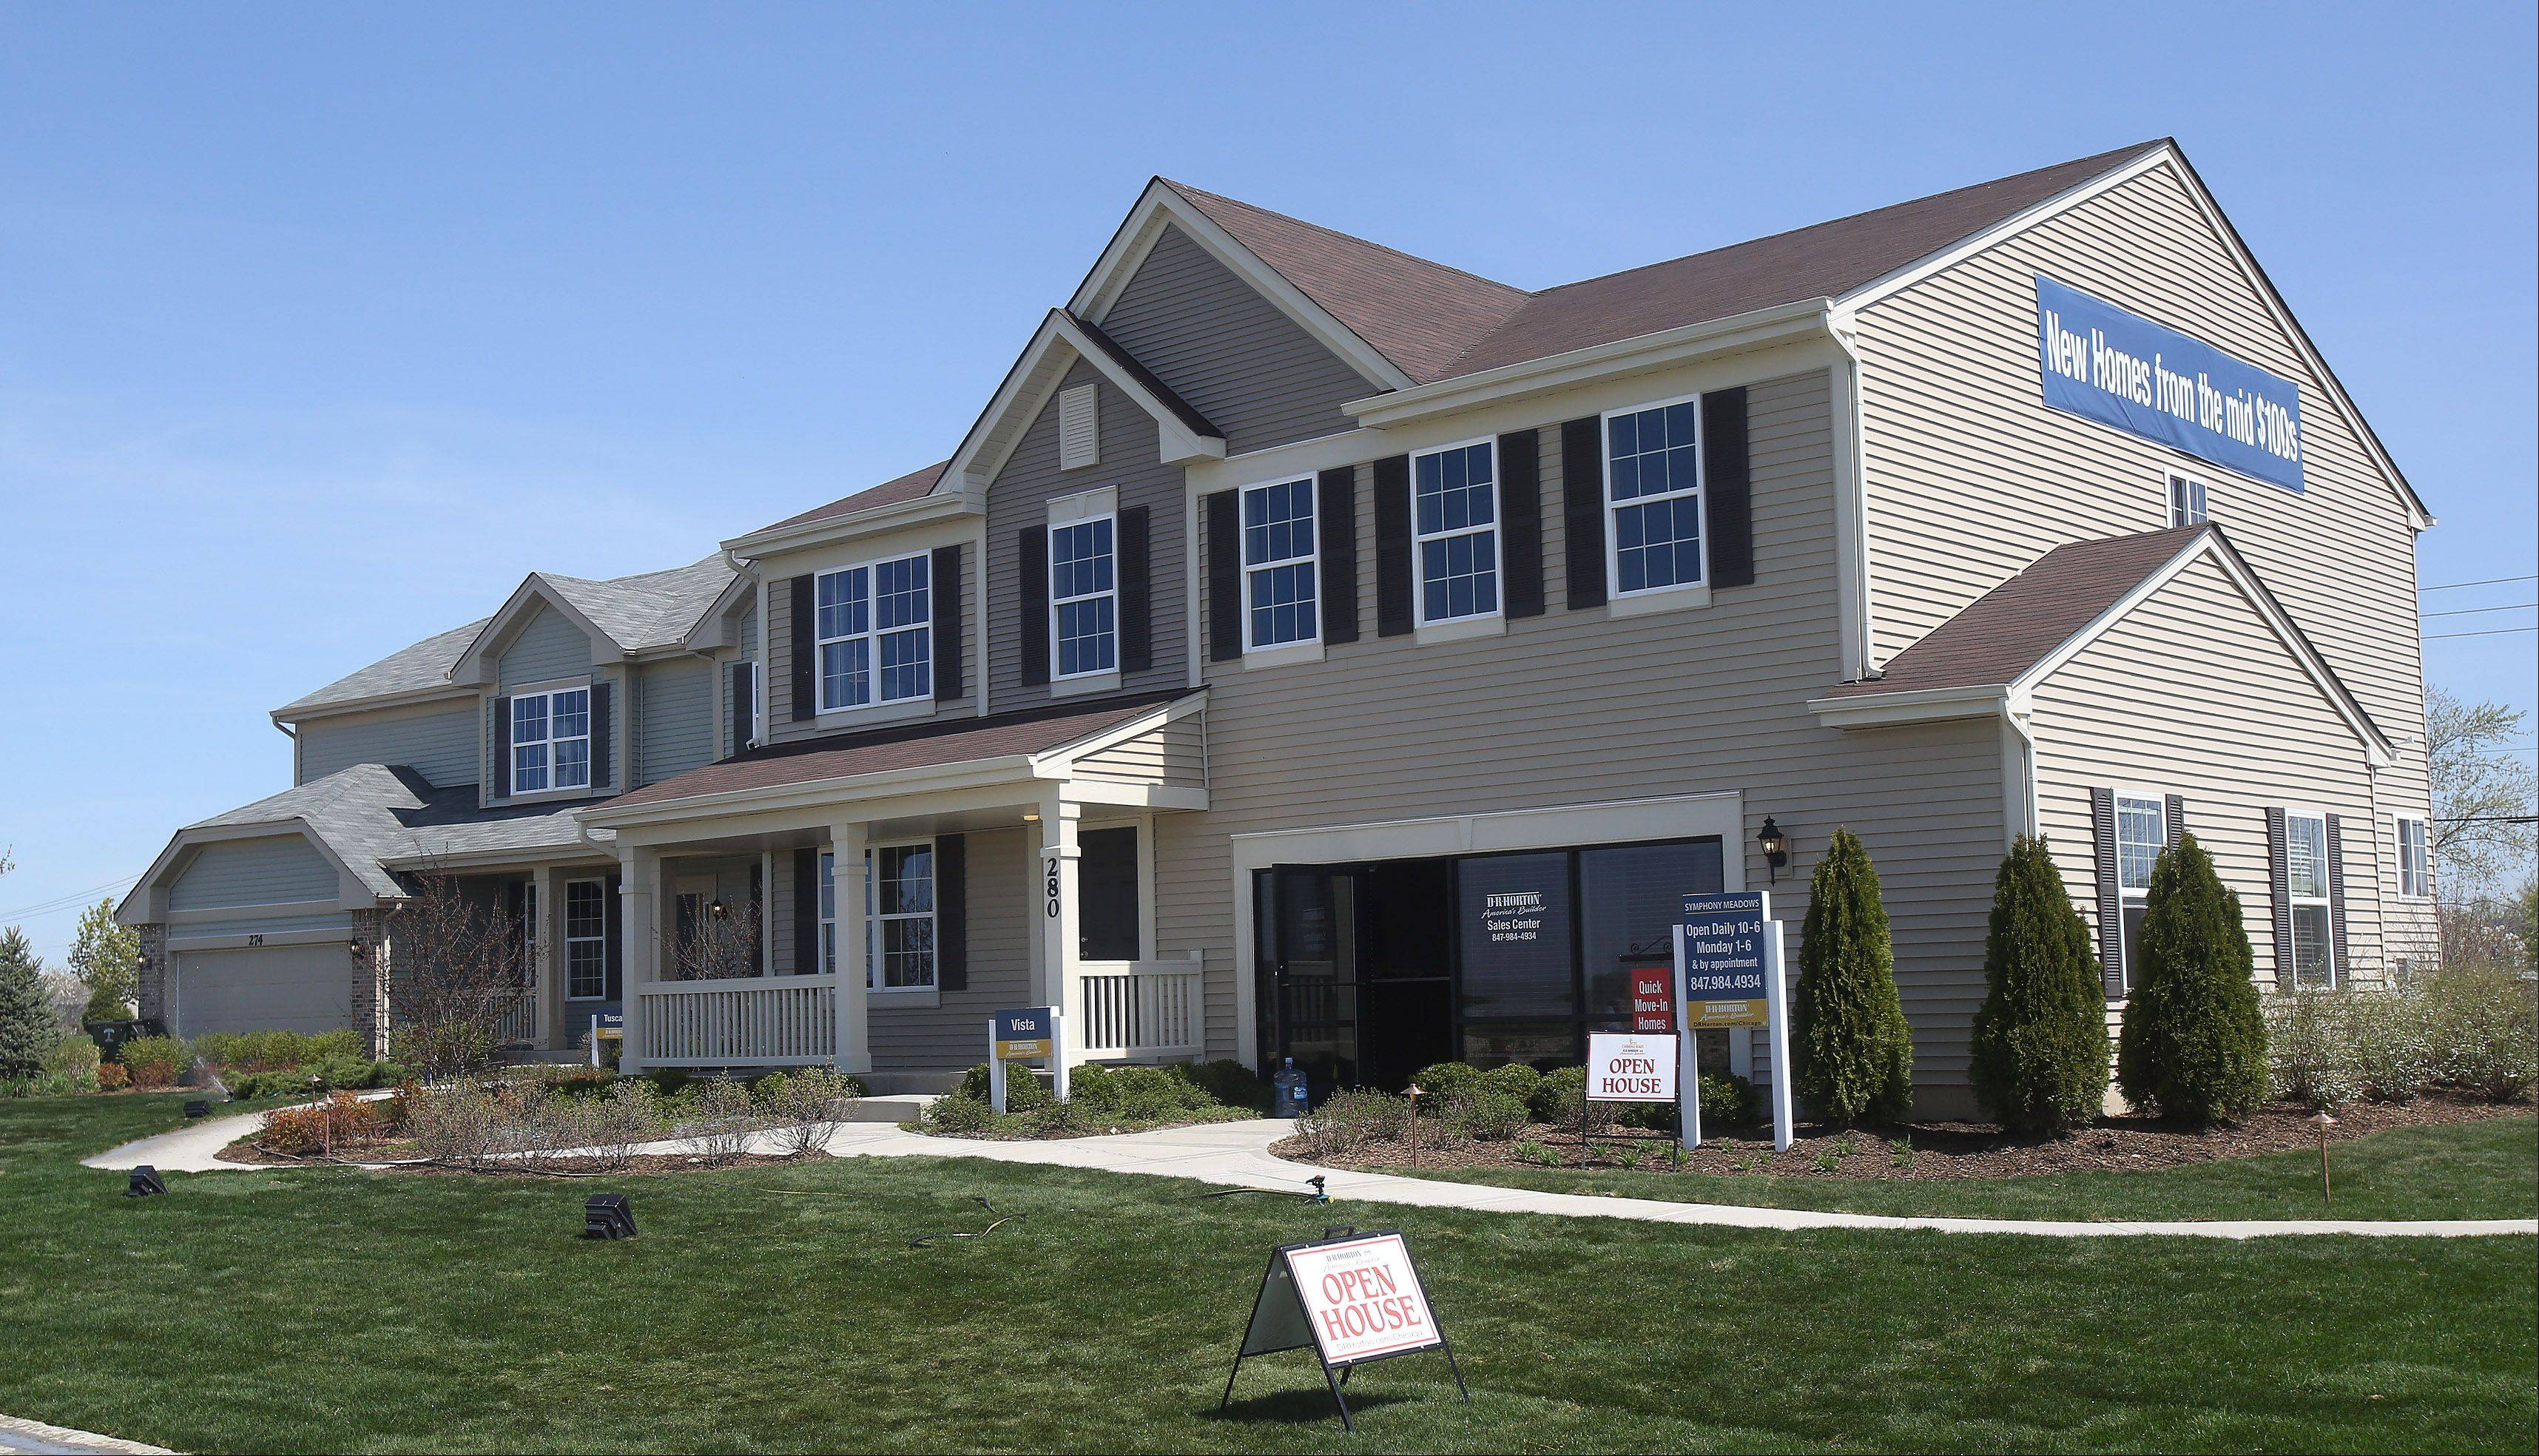 Two new model homes recently opened at D.R. Horton's Symphony Meadows community in Volo.